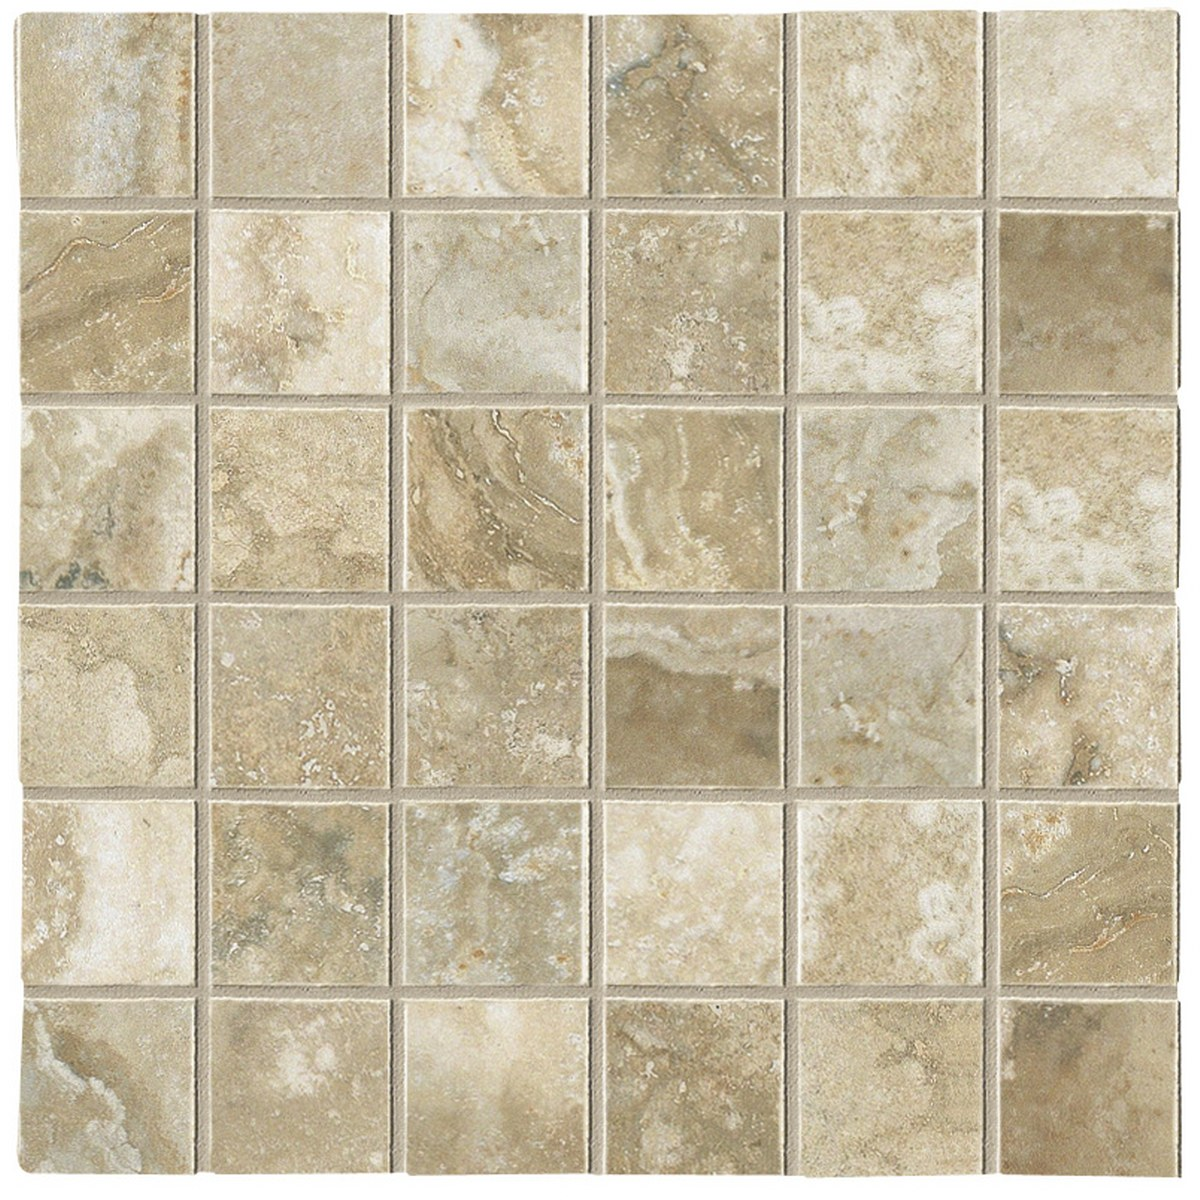 Alabastro beige mosaic ceramic tile supplies for Carrelage 50x50